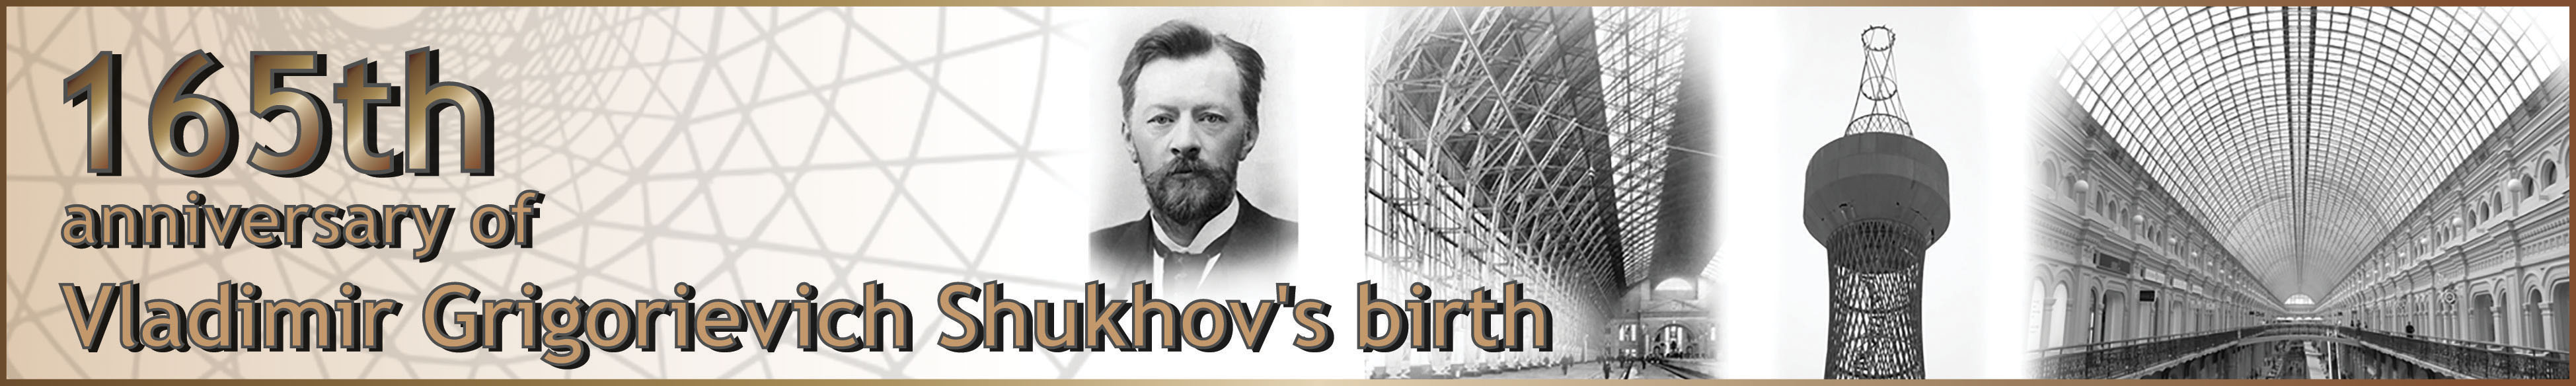 165th anniversary of Vladimir Grigorievich Shukhov's birth